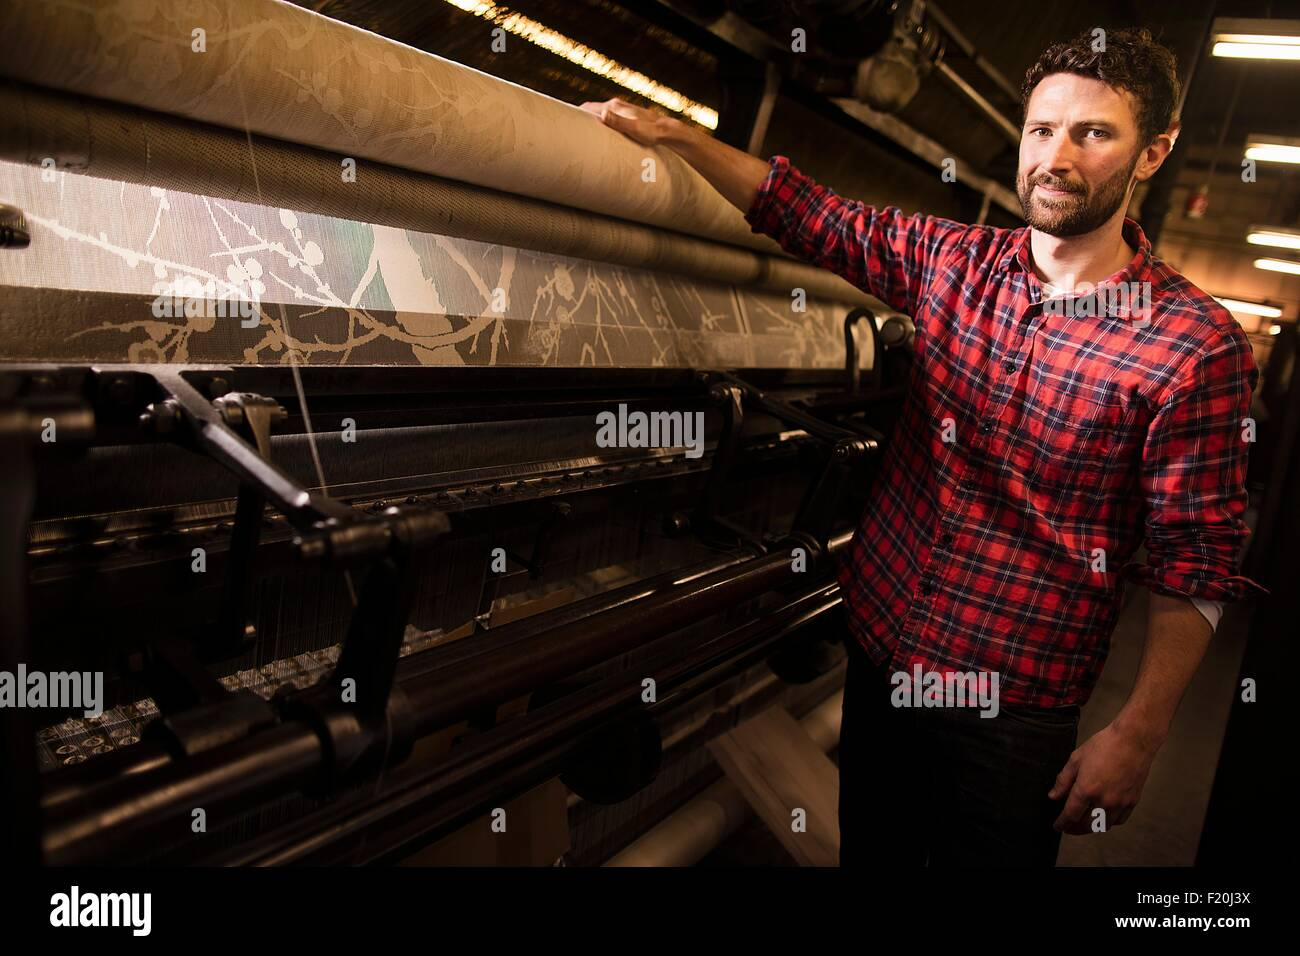 Portrait of male weaver next to old weaving machine in textile mill - Stock Image